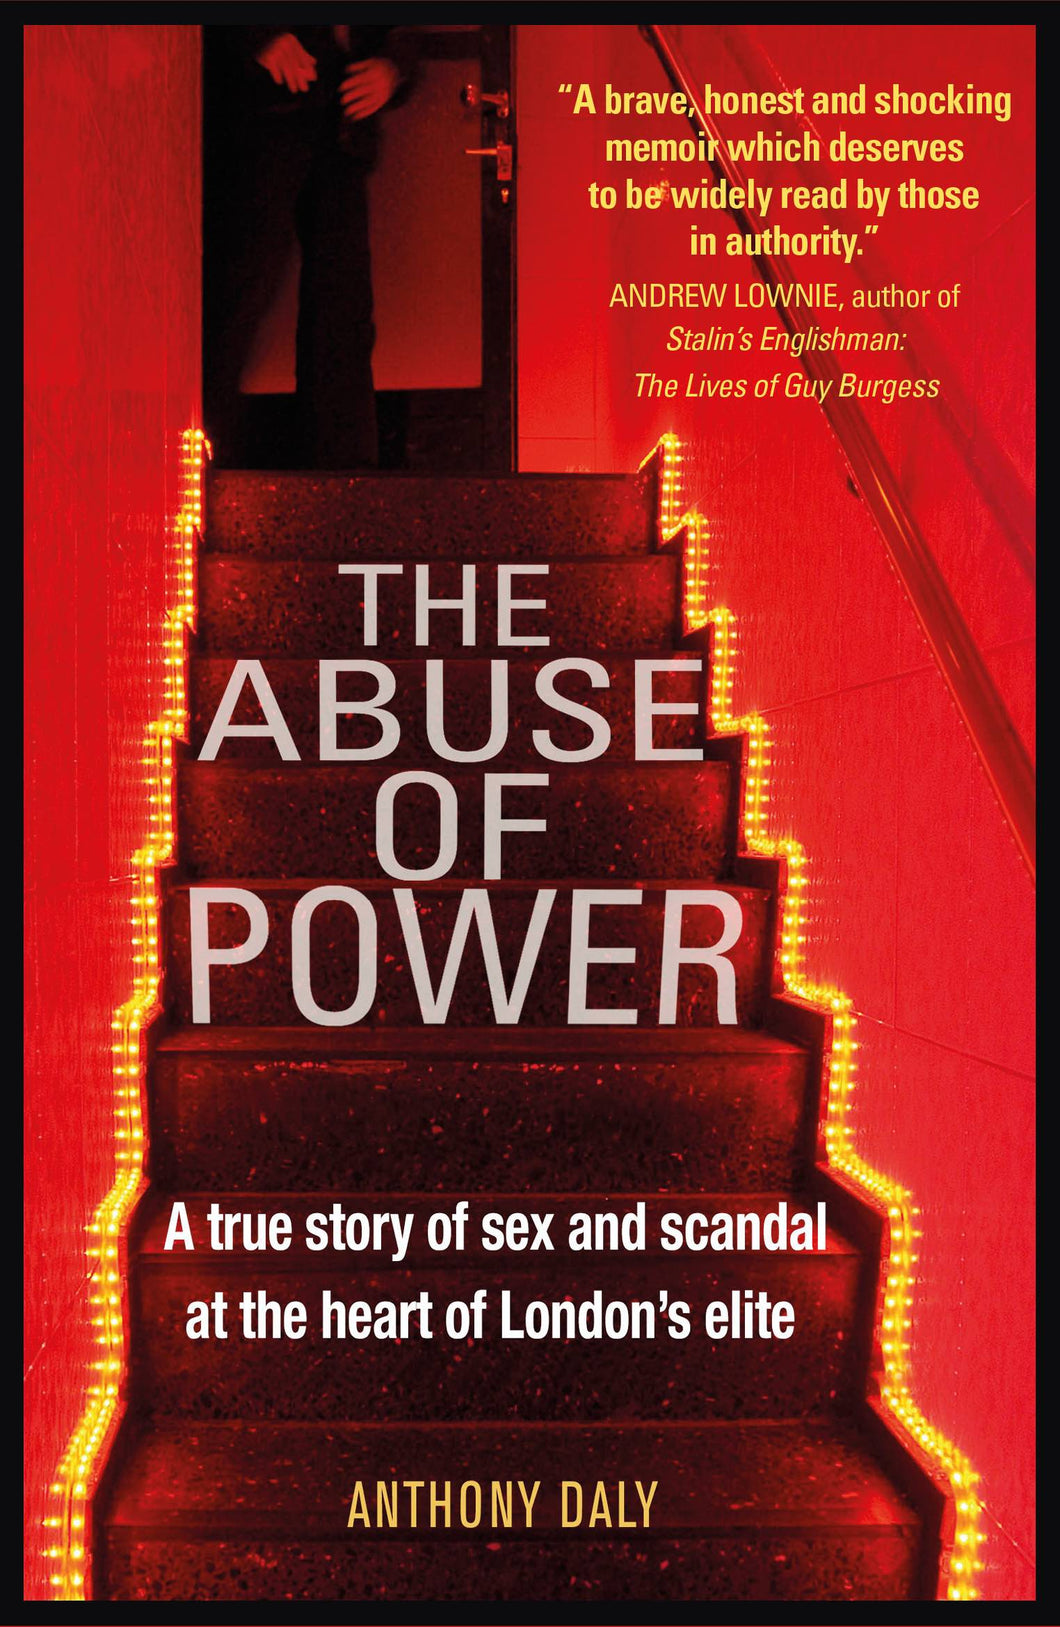 The Abuse of Power